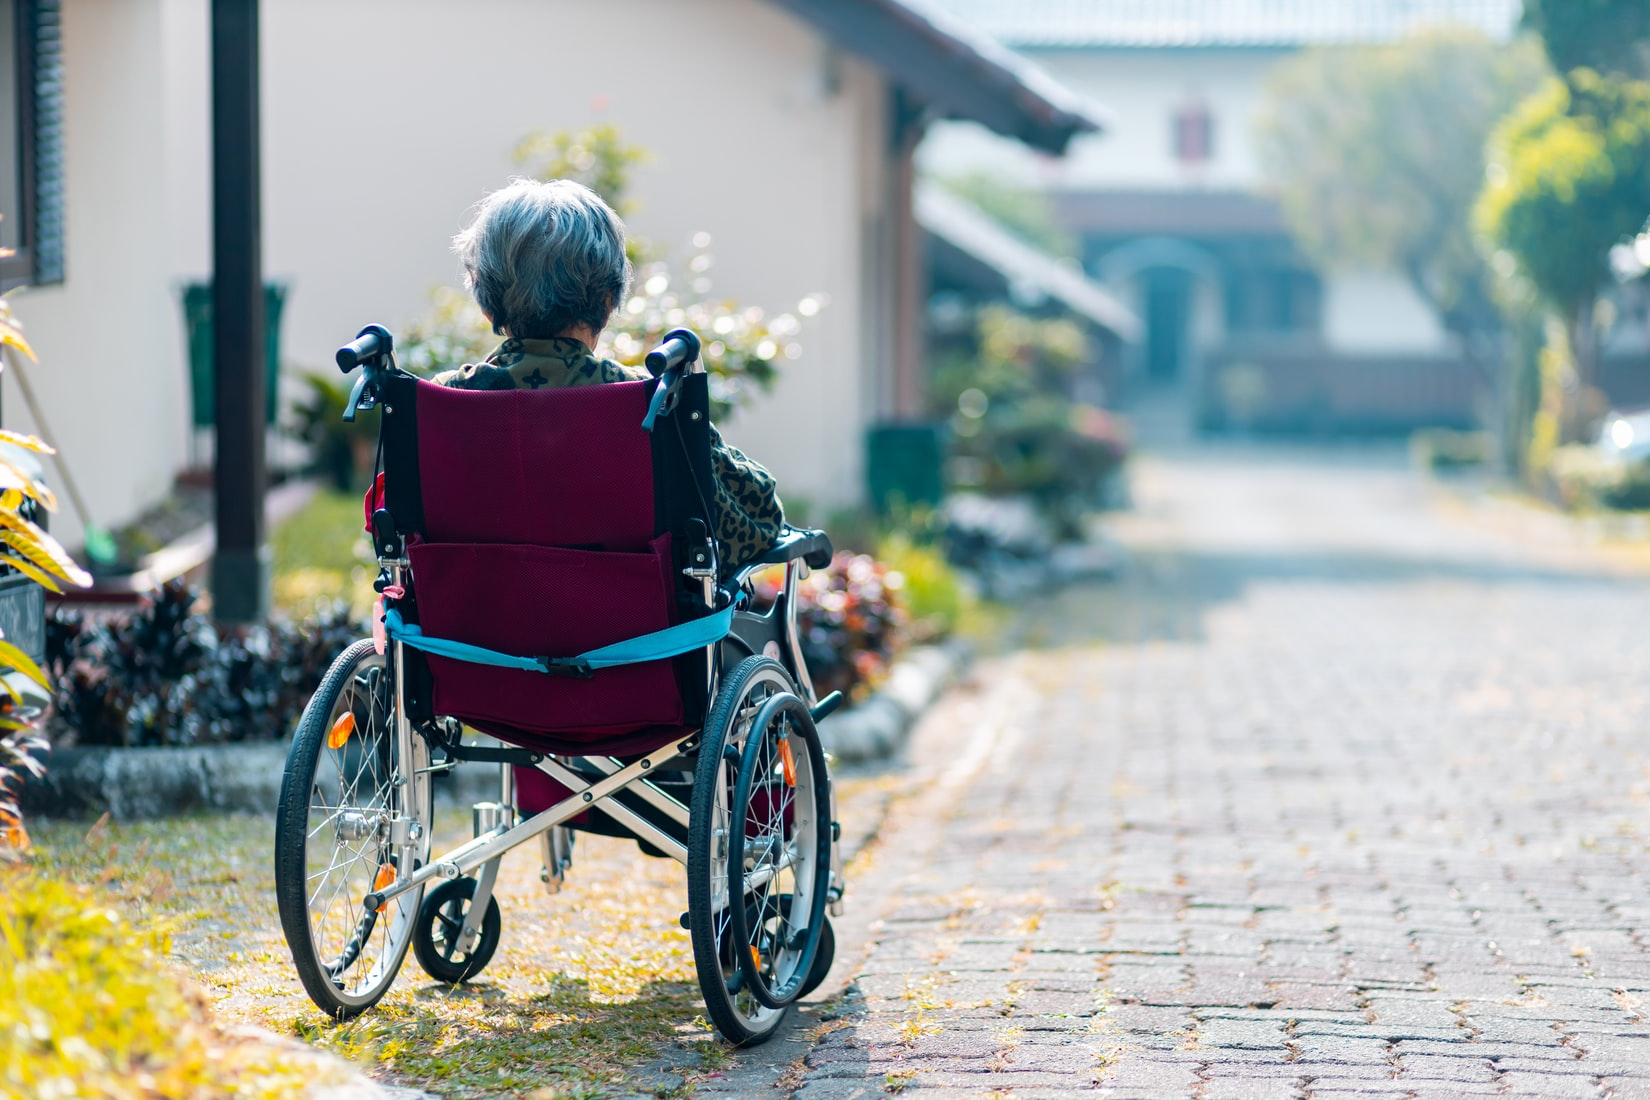 Elderly woman with dementia sitting on wheelchair near houses and stone driveway